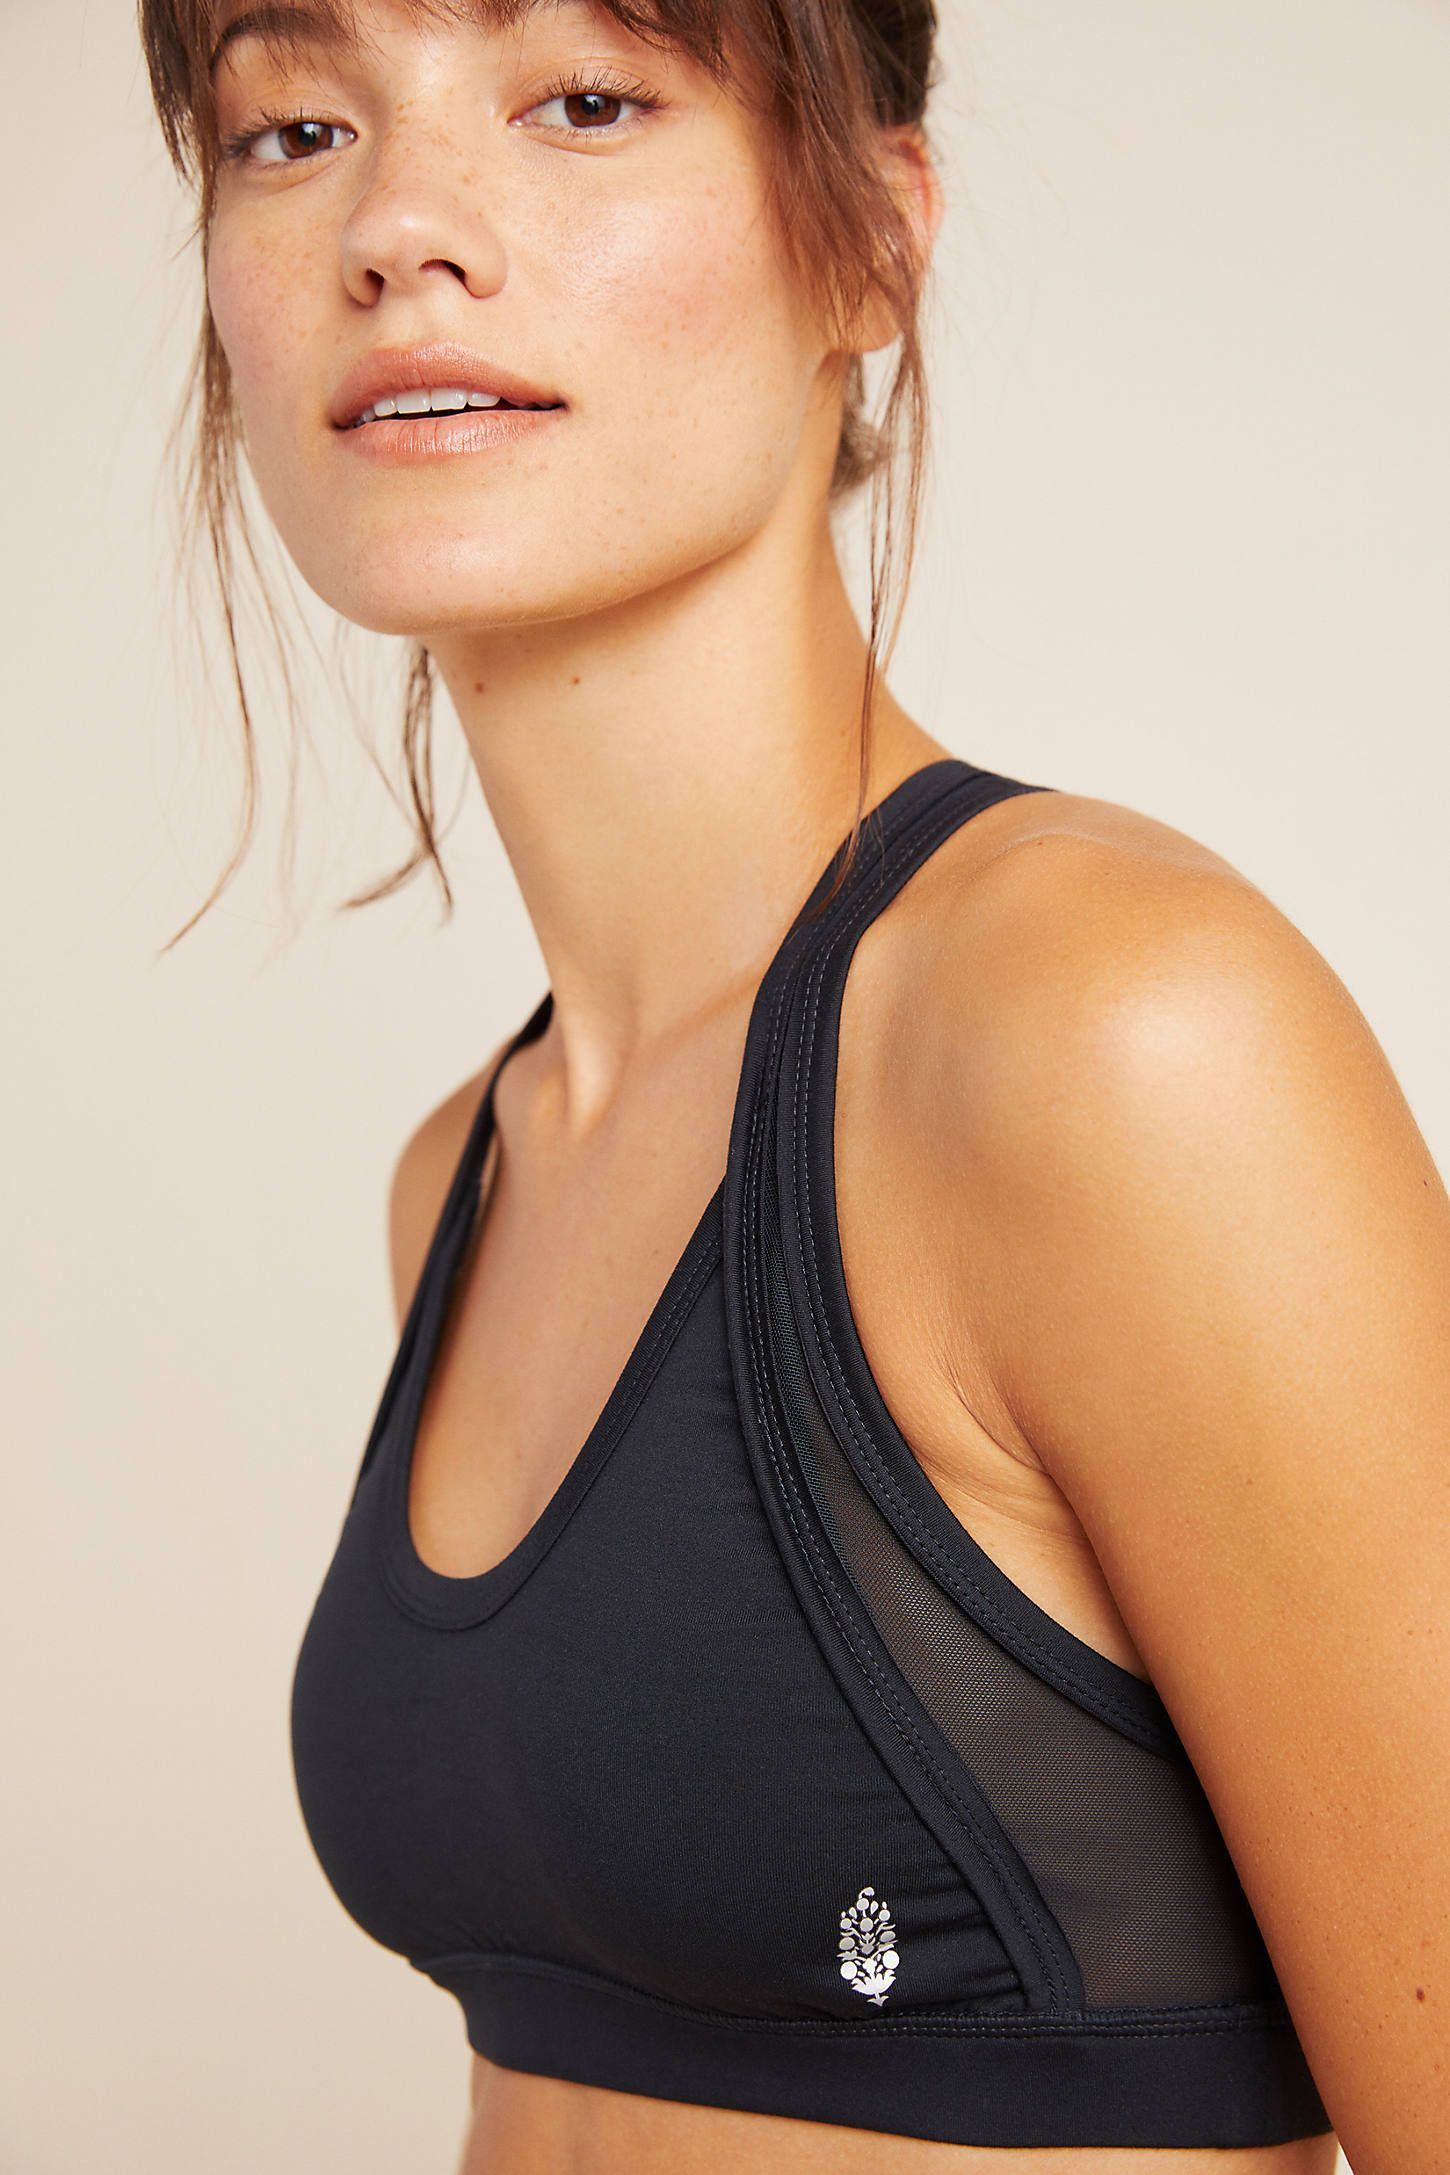 Free People Movement Out Of Your League Sports Bra by in Pink Size: L, Women's Activewear at Anthropologie